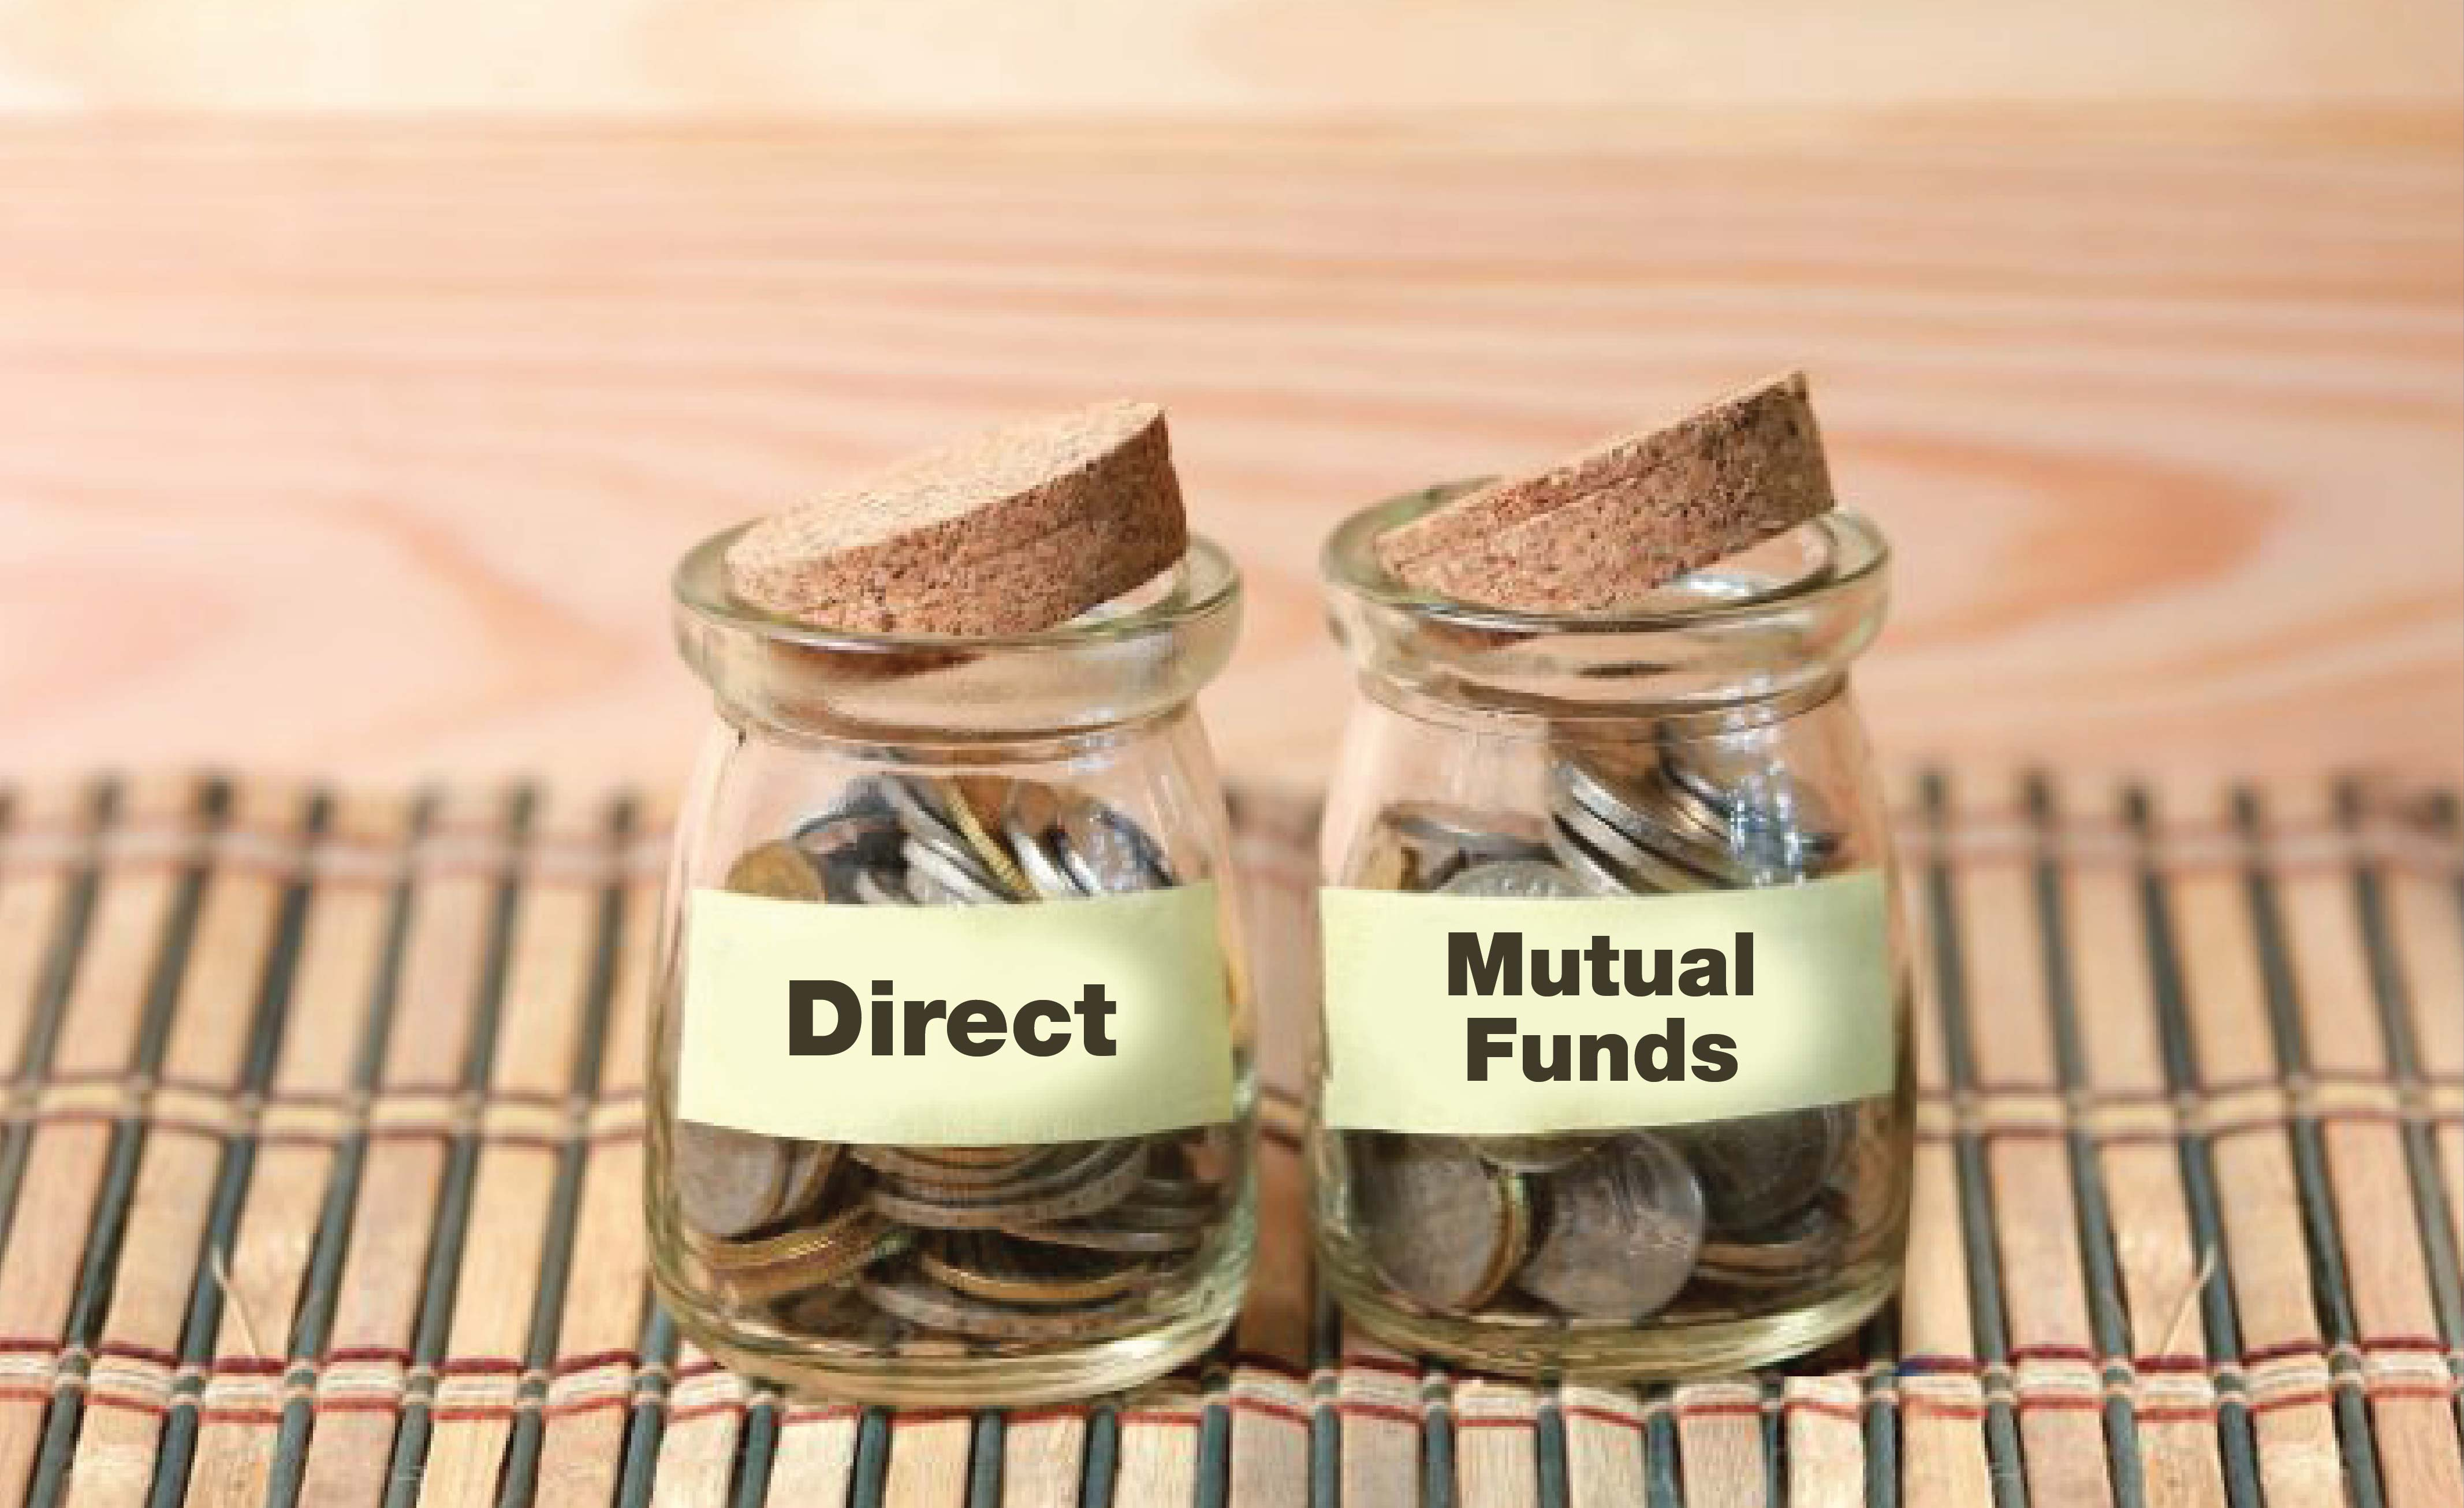 HDFC mutual fund investment plans